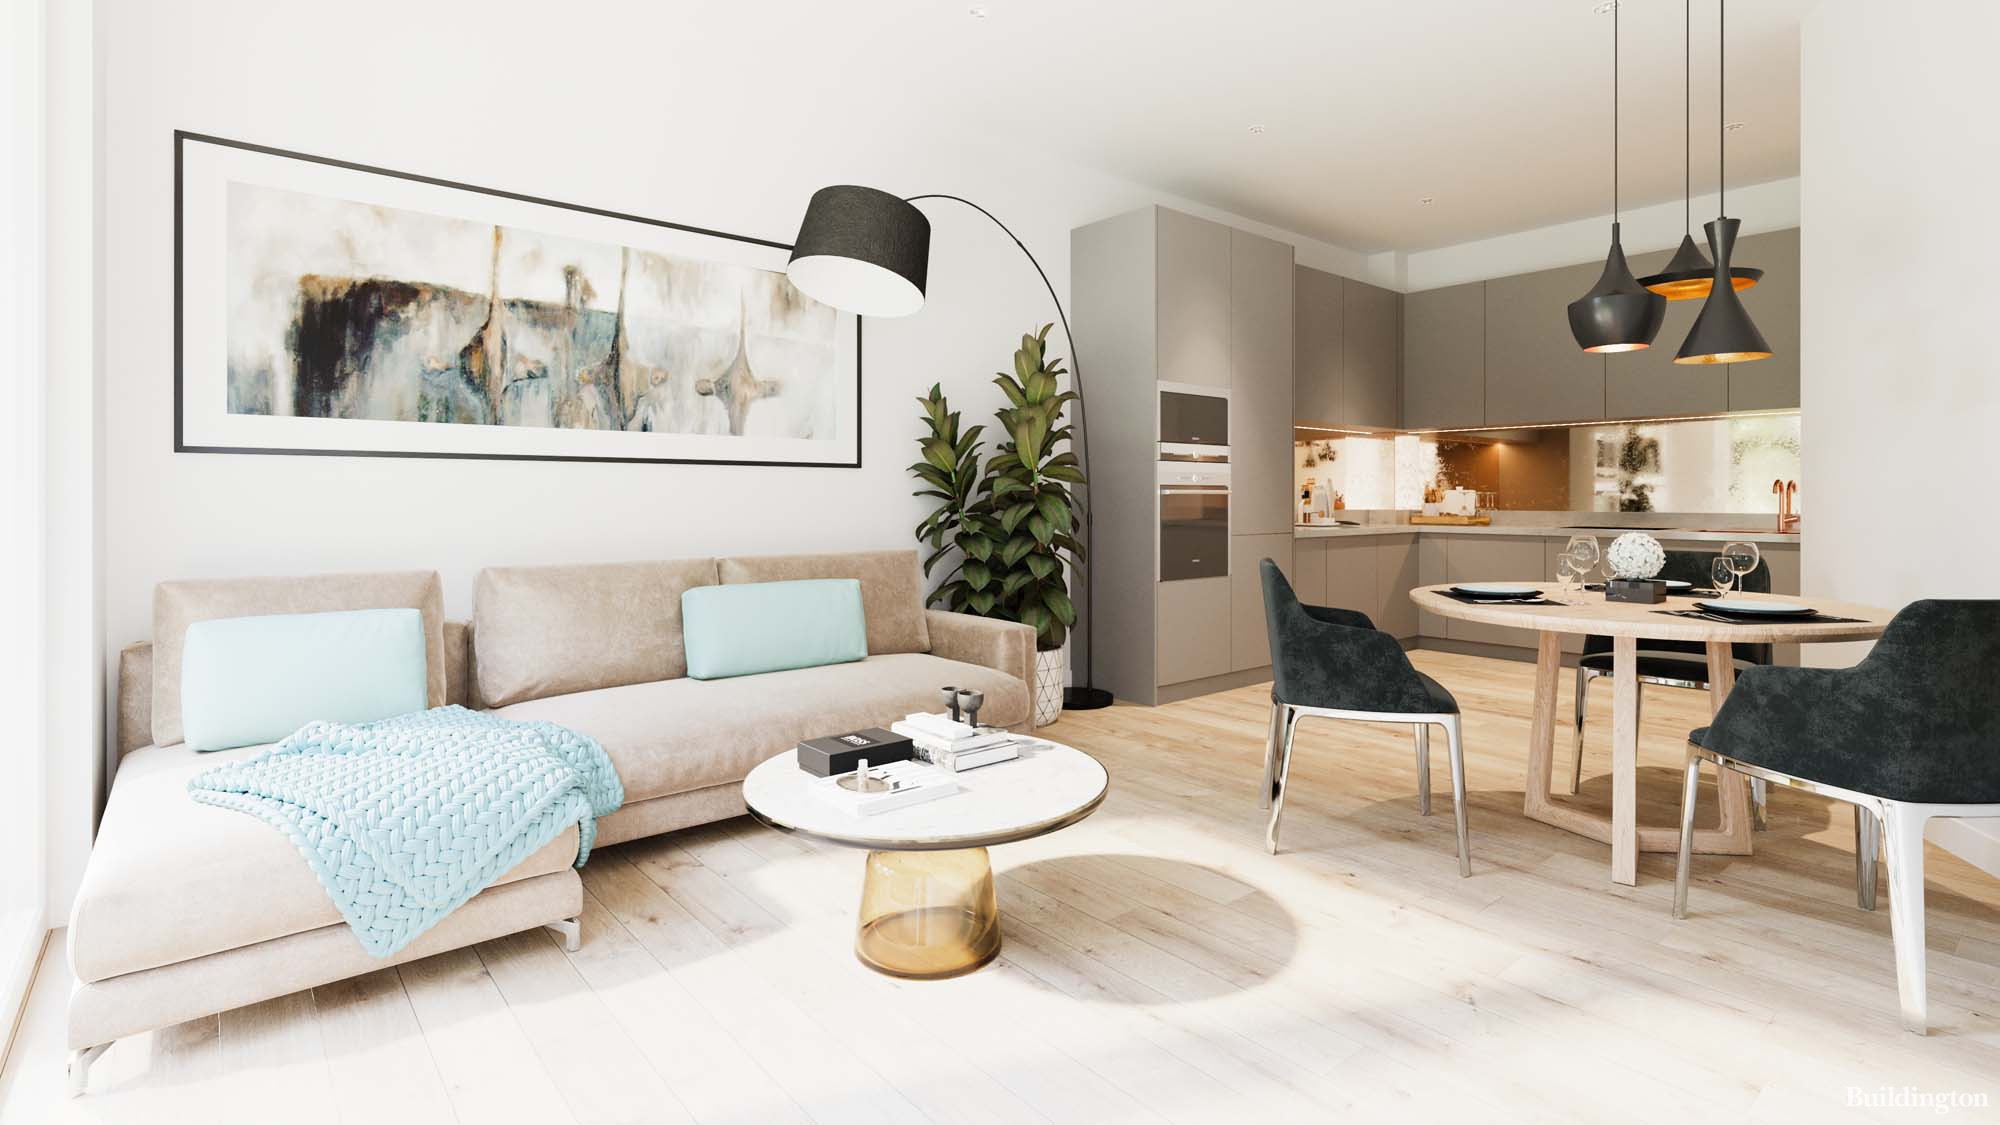 The living room at One Fox Lane development in Palmers Green, London N13.